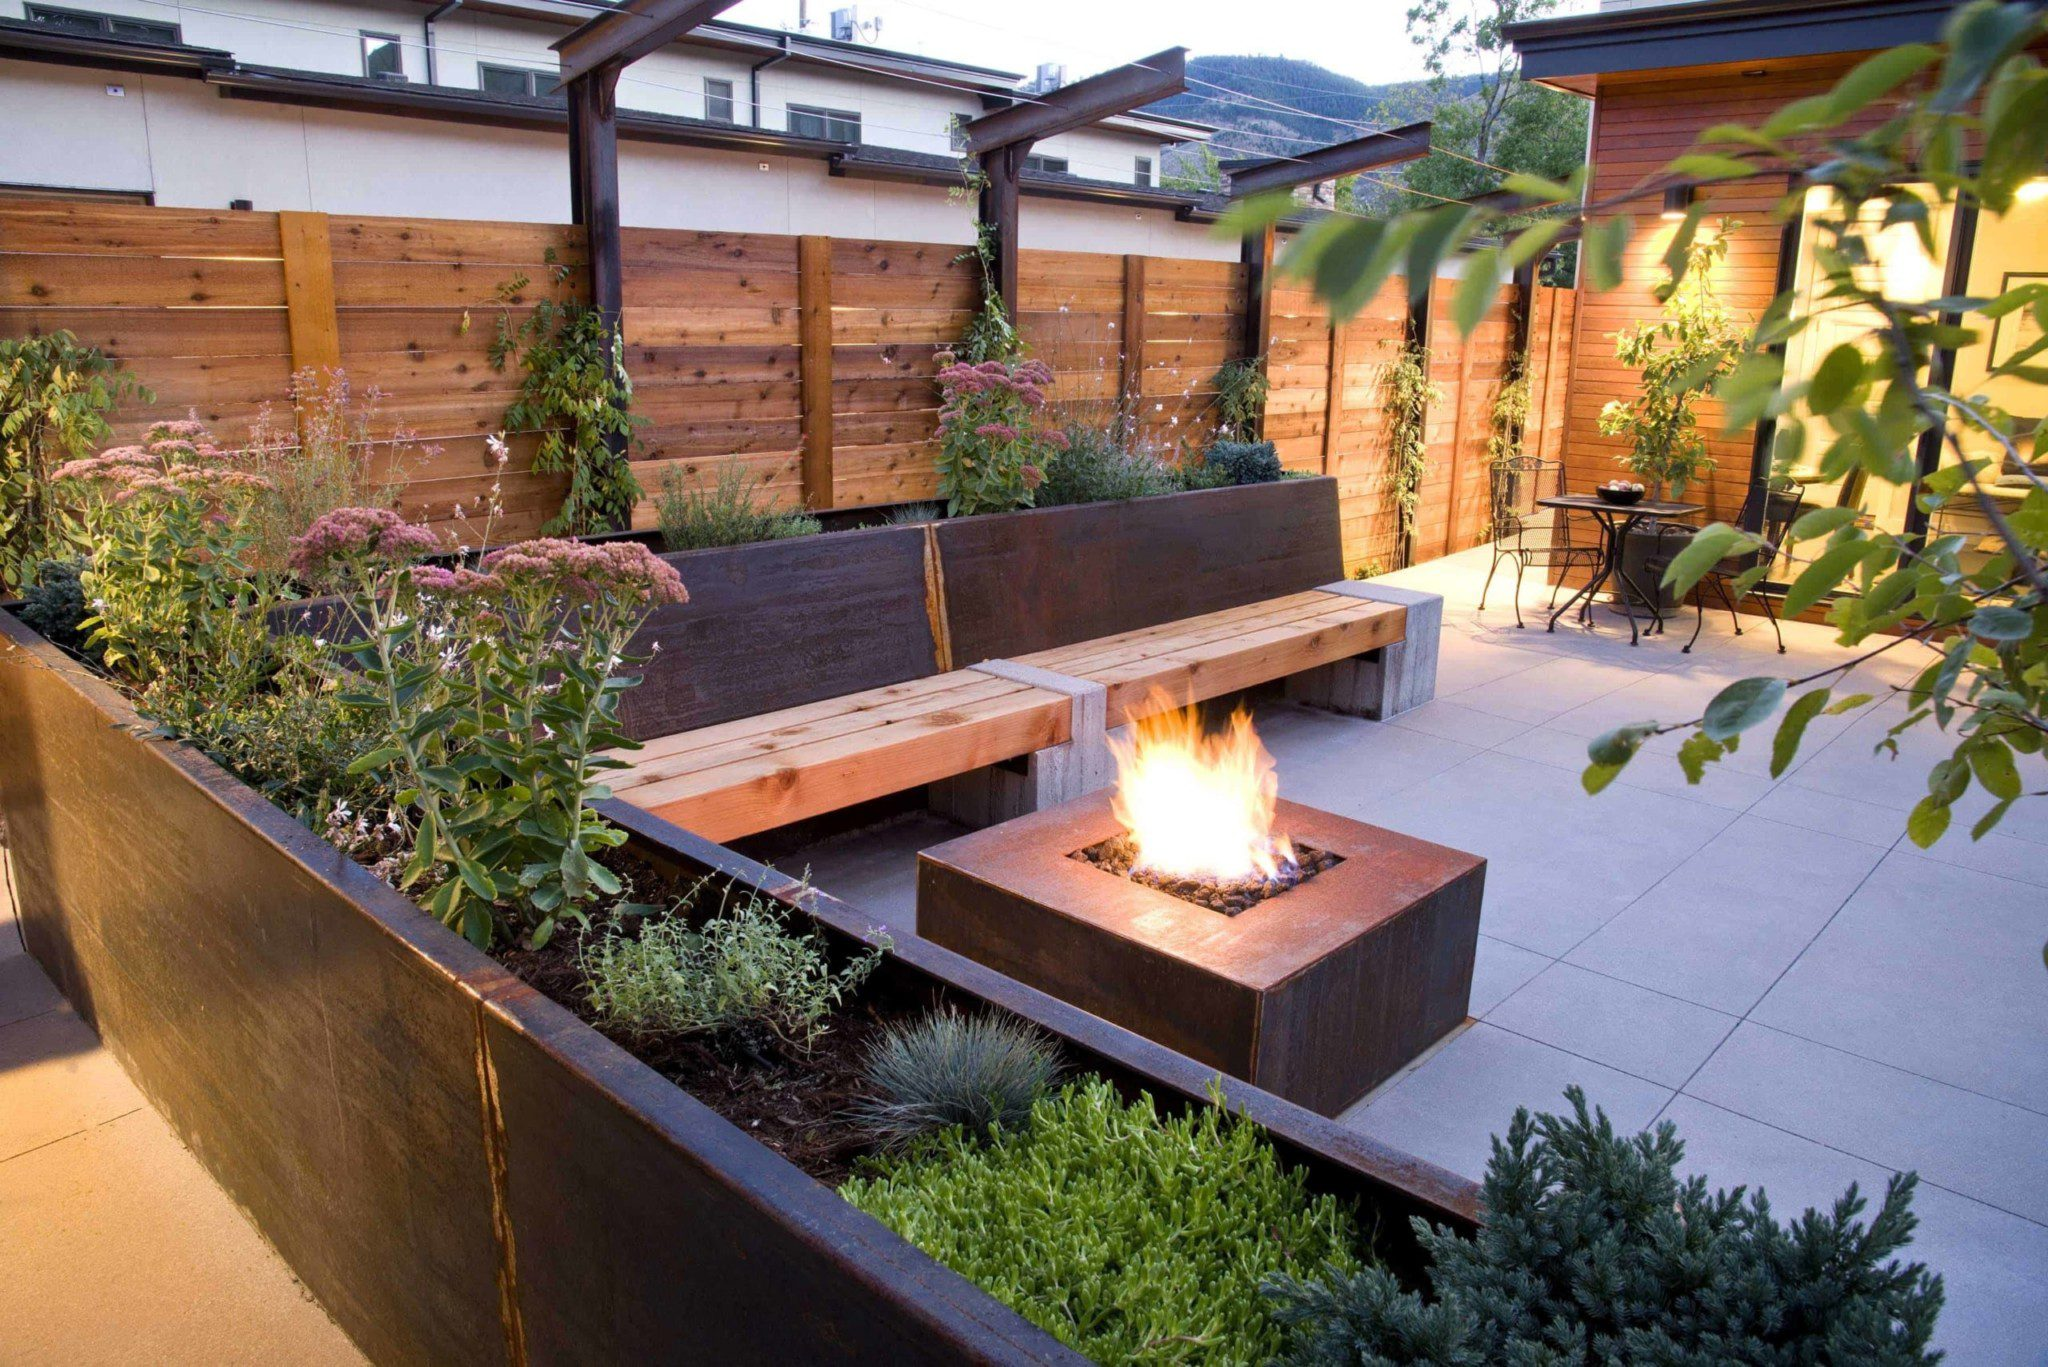 Blog Featured – Landscape Design Trends of 2017